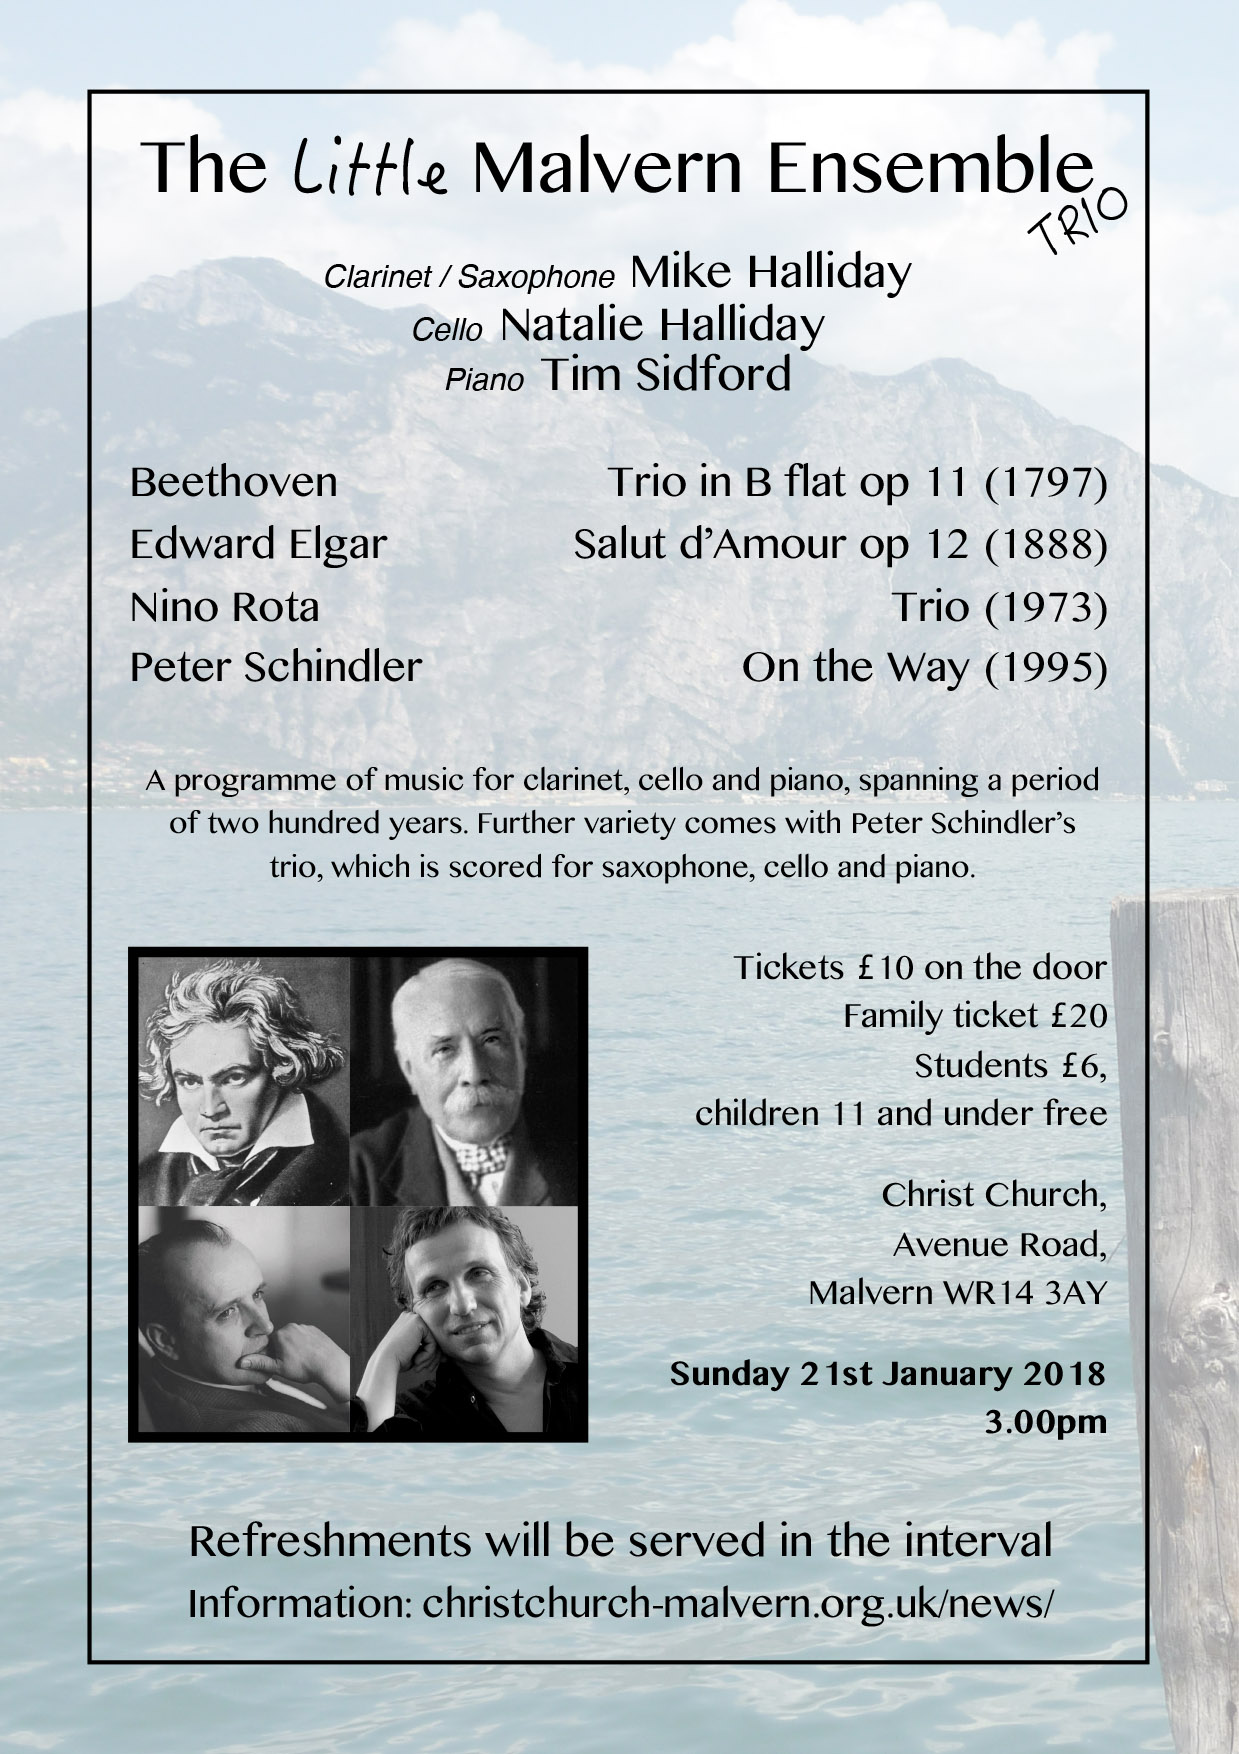 The Little Malvern Emsemble Trio - 3.00 pm Sunday 21st January 2018